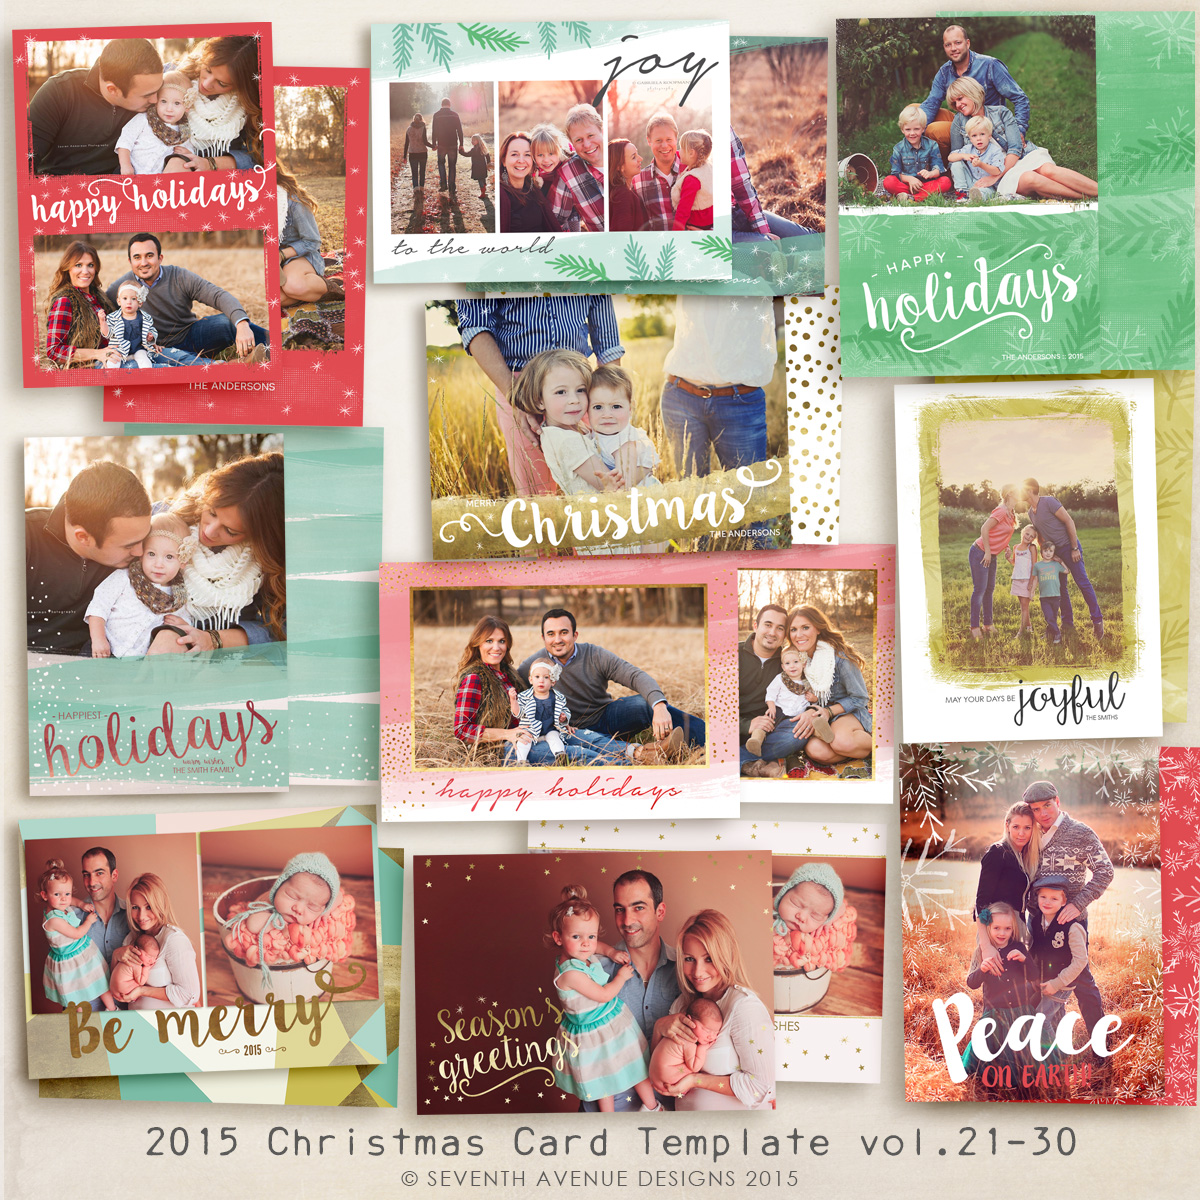 2015 Christmas Card Templates vol.21-30